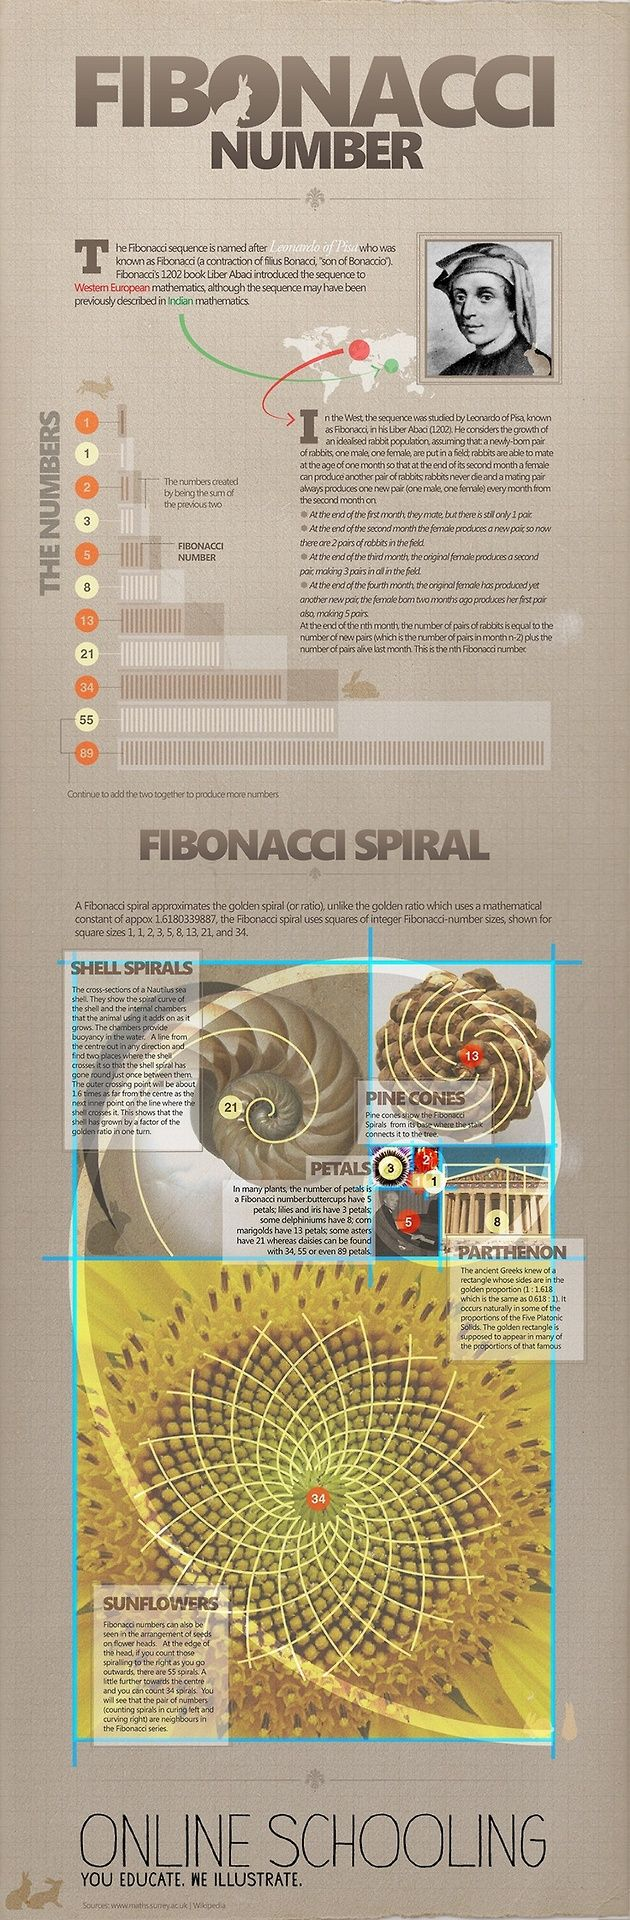 Fell in love with fibonacci back in 7th grade. Shit makes so much sense now. No wonder I've always been a numbers nerd